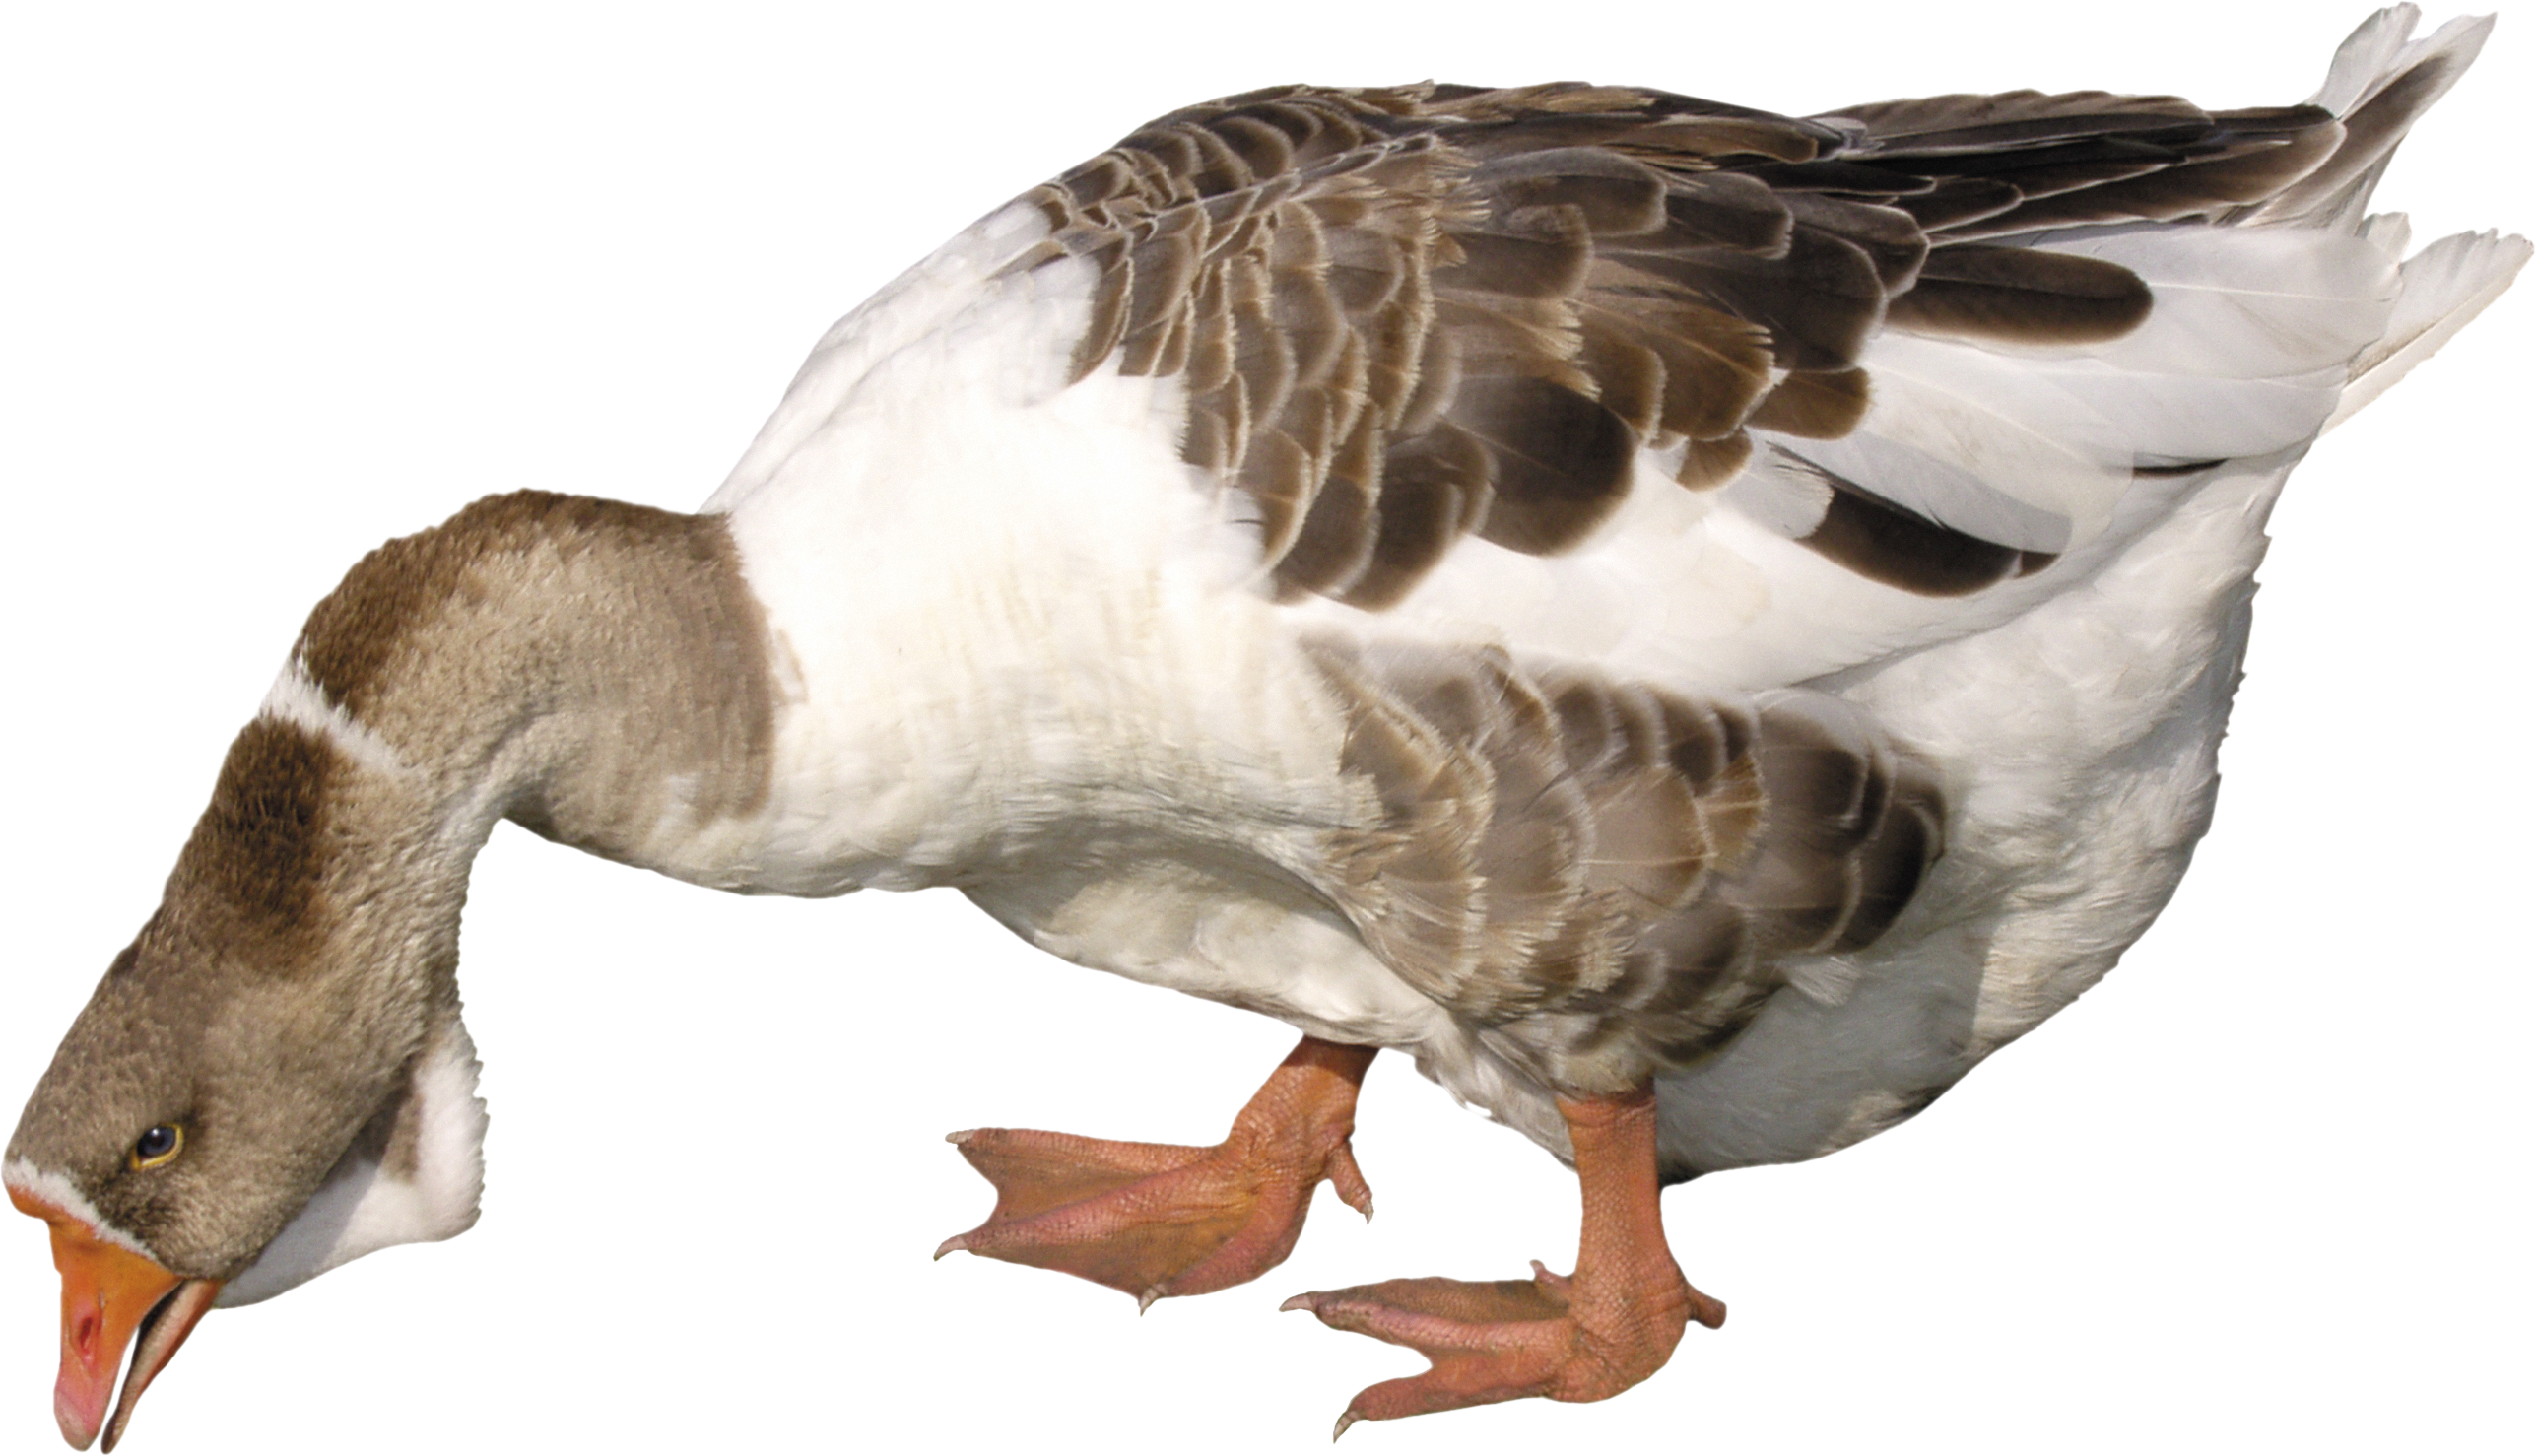 http://pngimg.com/upload/duck_PNG5035.png